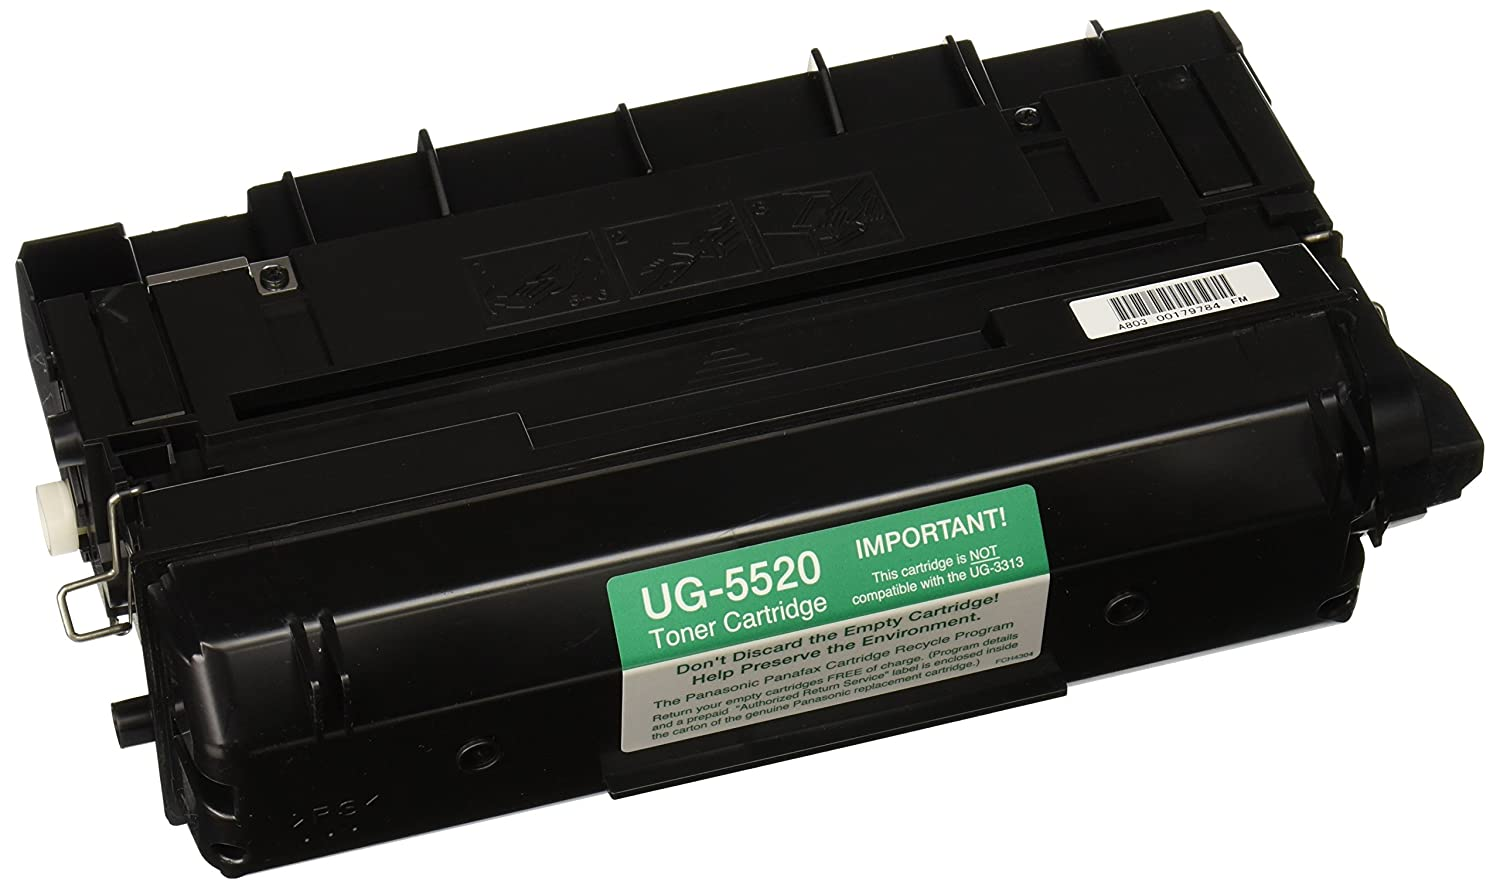 PANASONIC UG5520 Toner/developer/drum cartridge for panasonic fax machine uf890, 990